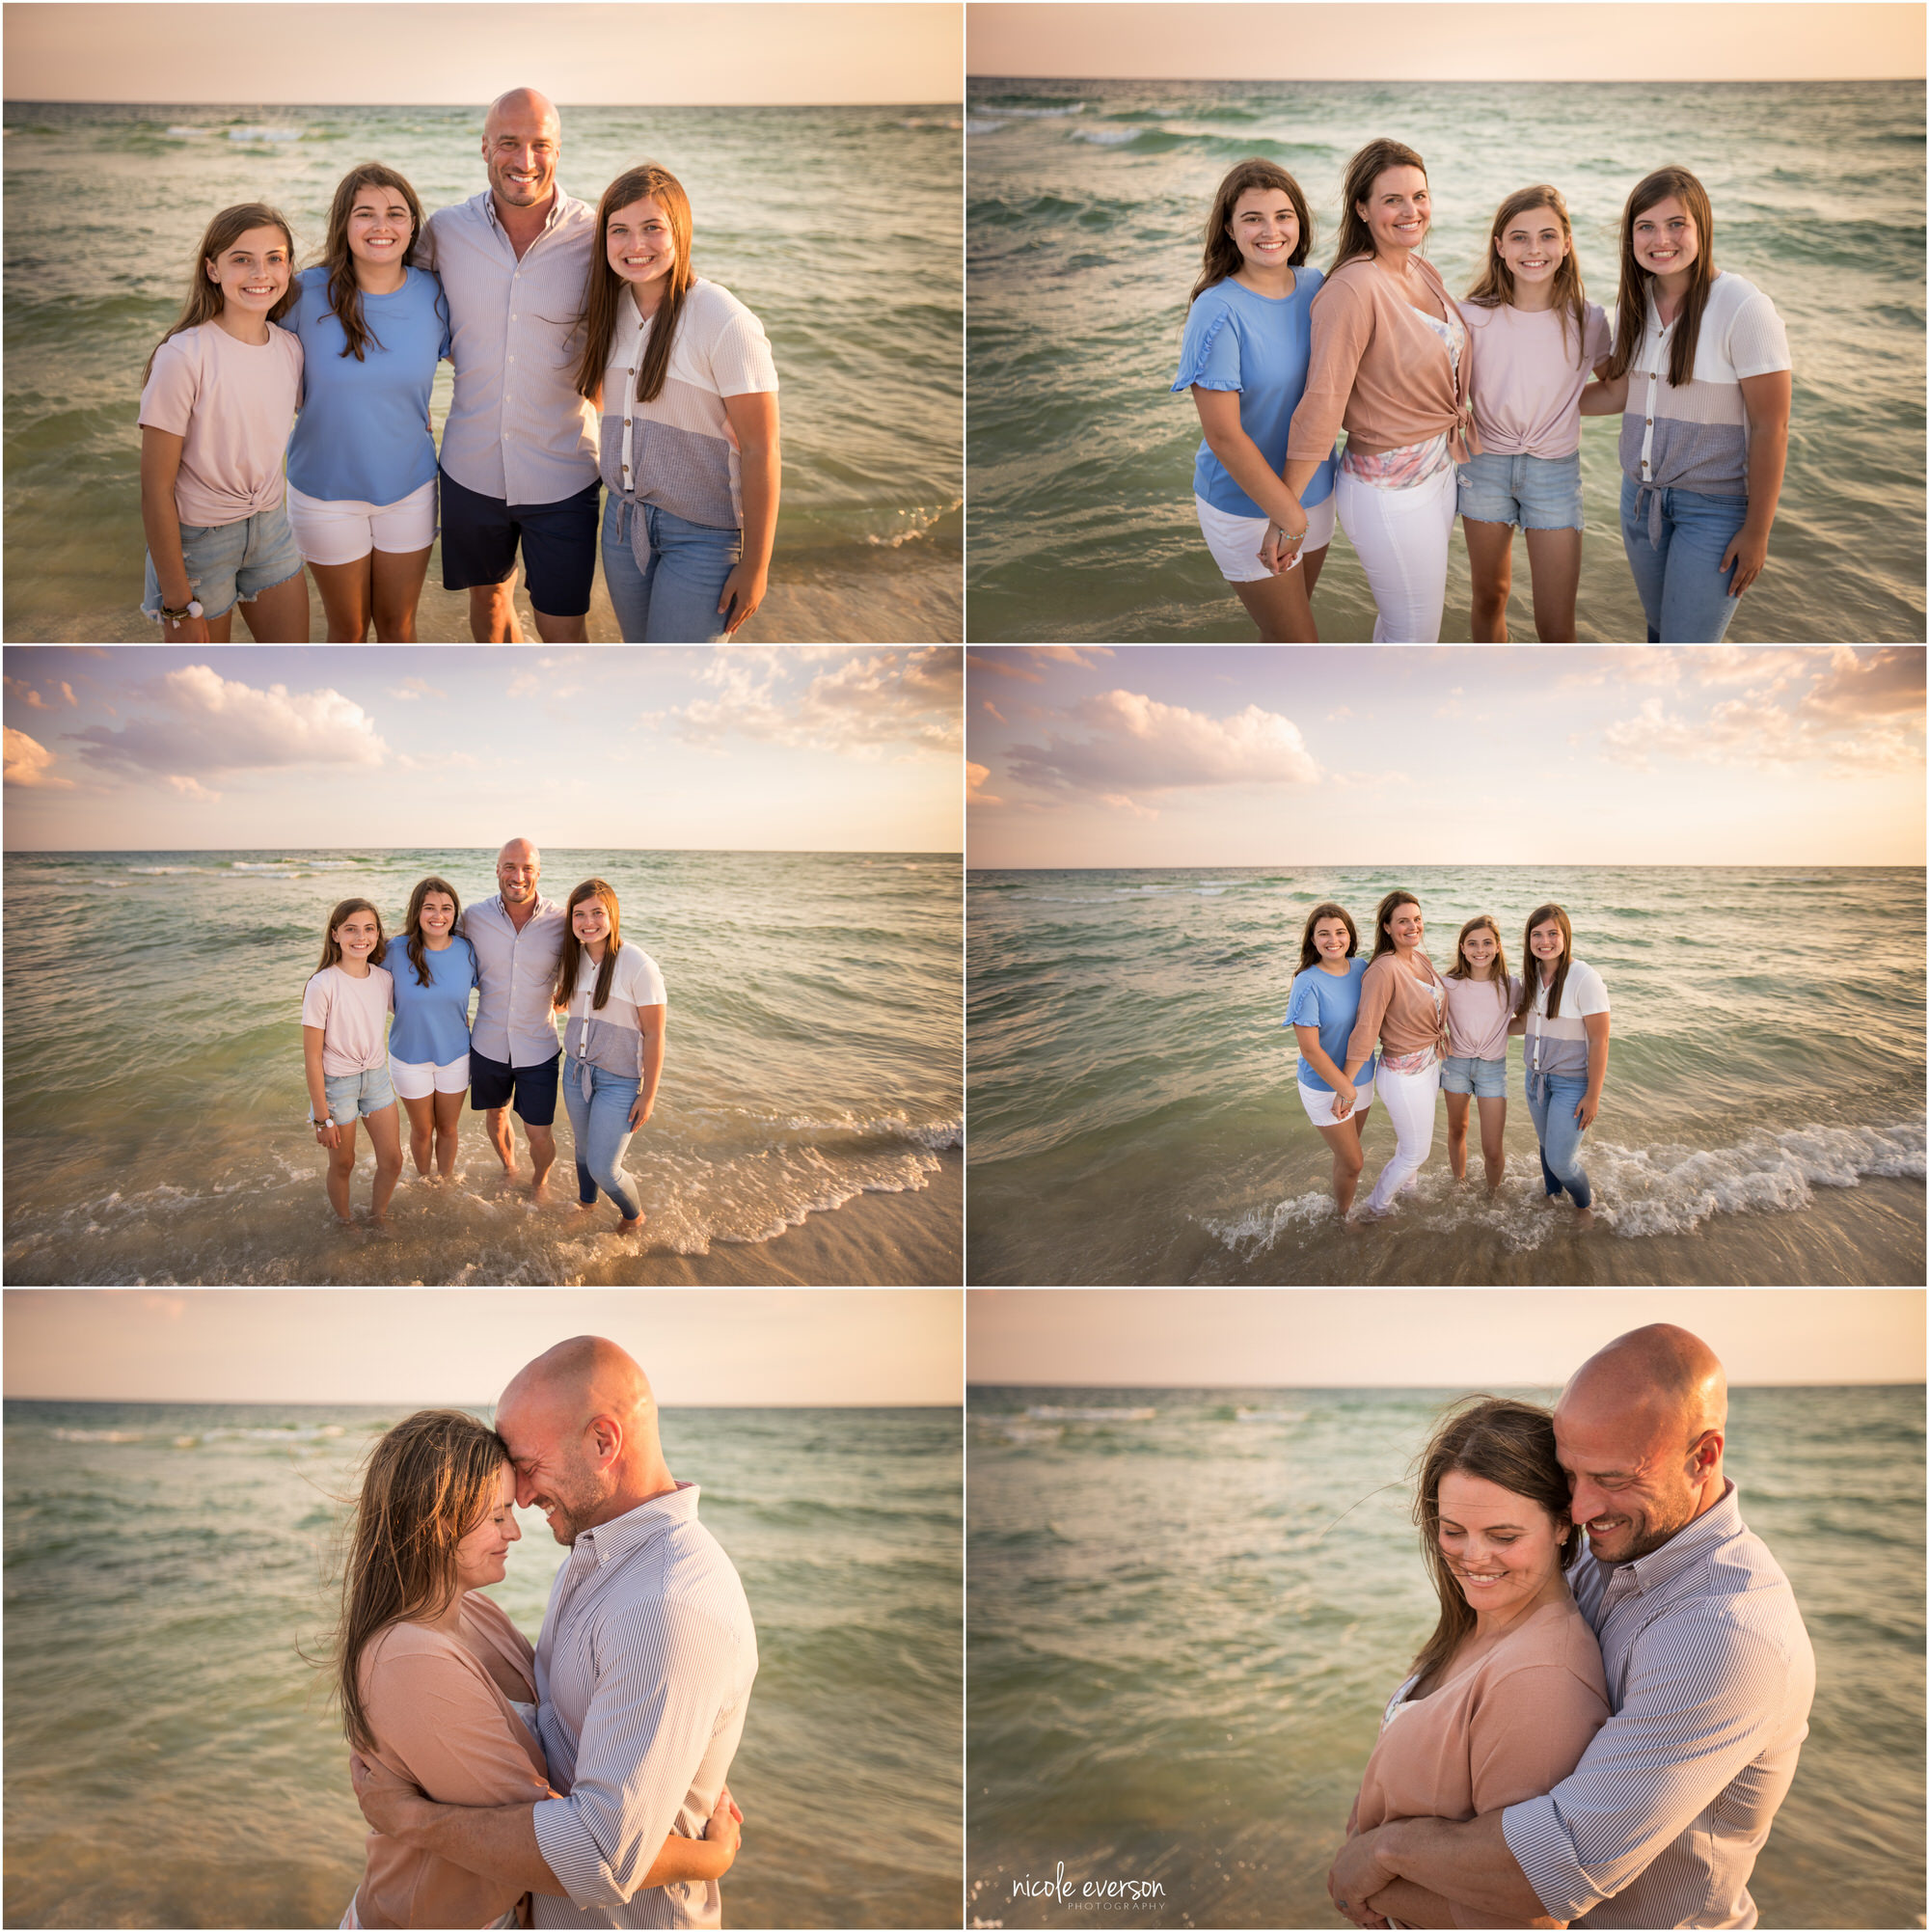 Sunset beach photos on 30a. Loving family posing in front of the ocean in Rosemary Beach. Nicole Everson Photography.